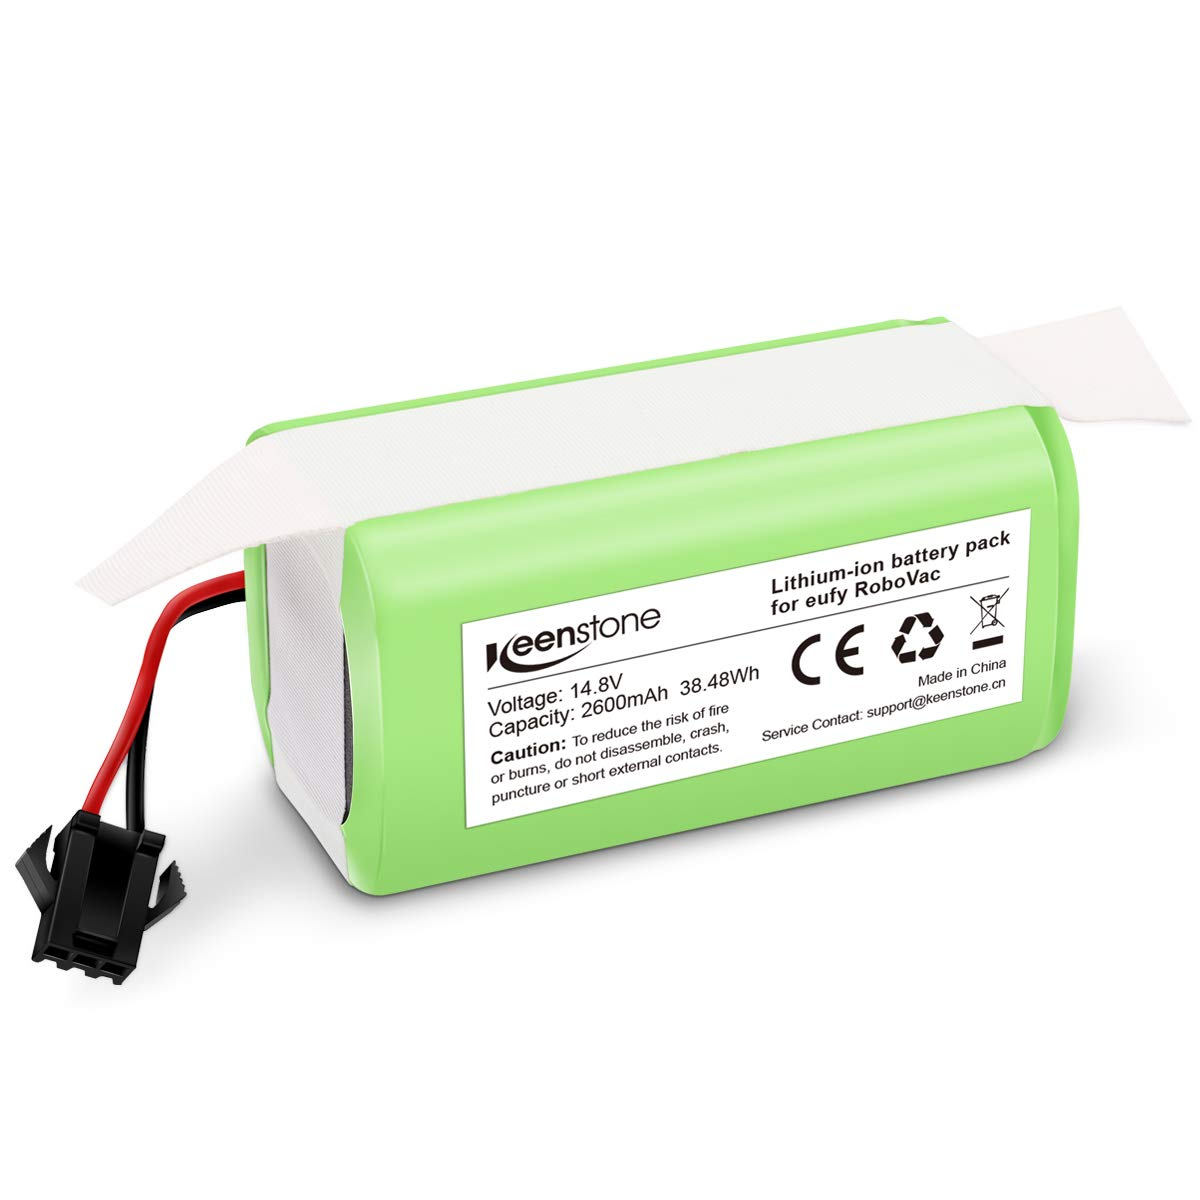 Keenstone 14.8v 2600mAh Li-ion Rechargeable Replacement Battery for Eufy Compatible with RoboVac 11, RoboVac 11S, RoboVac 11S MAX, RoboVac 15T, RoboVac 30, RoboVac 15C, RoboVac 12, RoboVac 35C by Keenstone